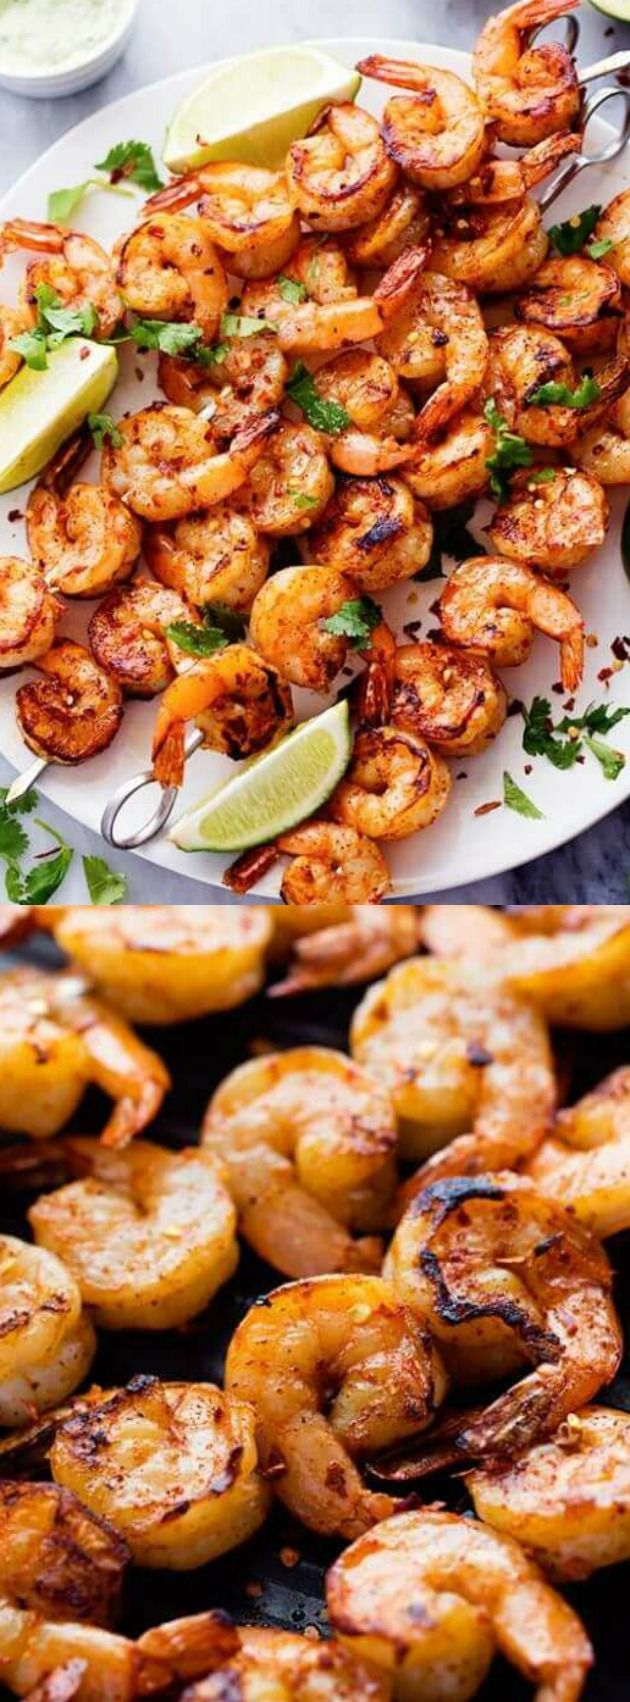 This Grilled Spicy Lime Shrimp with Creamy Avocado Cilantro Sauce recipe from The Recipe Critic is a simple yet full of flavor recipe!